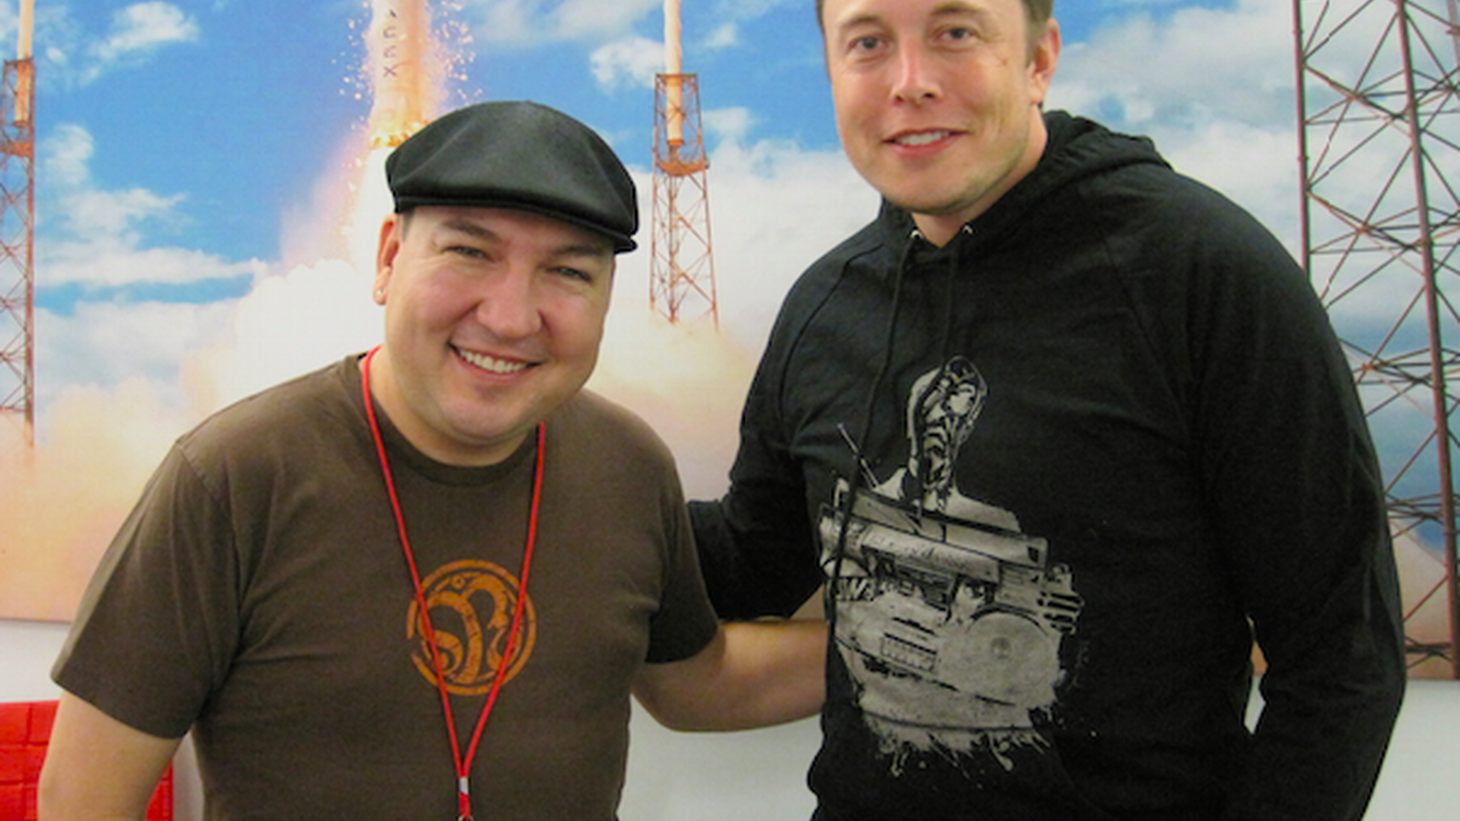 For his Guest DJ set, we learn about Elon Musk's early beginnings as an inventor, the song he whistles while he works and much more.